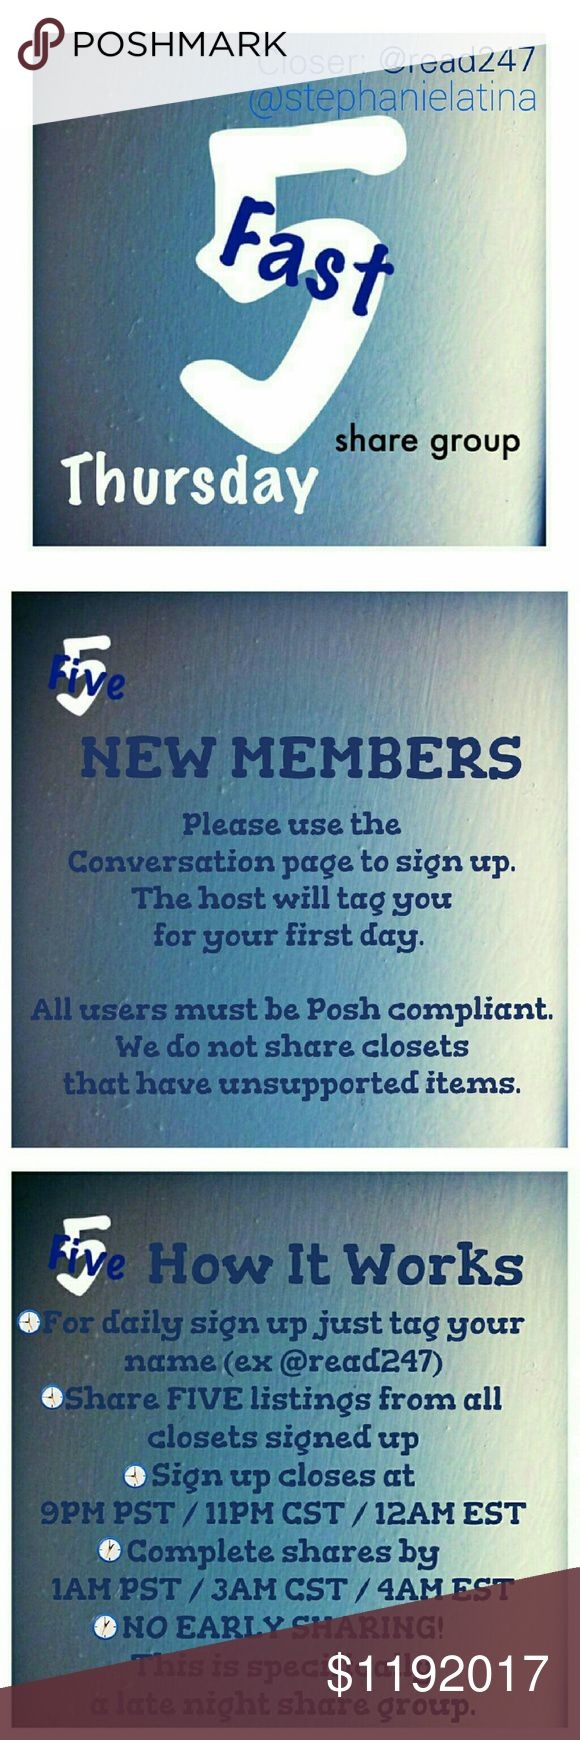 ⏳Thursday, 1/19 - Fast 5 Share Group SignUp Sheet⌛ 🌃New group members please sign up on the Conversation page. 🌃POSH COMPLIANT CLOSETS ONLY! 🌃If you have any ?s please use the conversation page. 🌃Share FIVE available listings. 🌃Sign up is open until 9PM PST /11PM CST /12AM EST 🌃You have until 1AM PST /3AM CST /4AM EST to finish sharing. 🌃NO EARLY SHARING! This group was created specifically for sharing at night. 🌃THIS IS THE DAILY SIGN UP SHEET! 🌃PLEASE BE SURE TO LIKE THE…